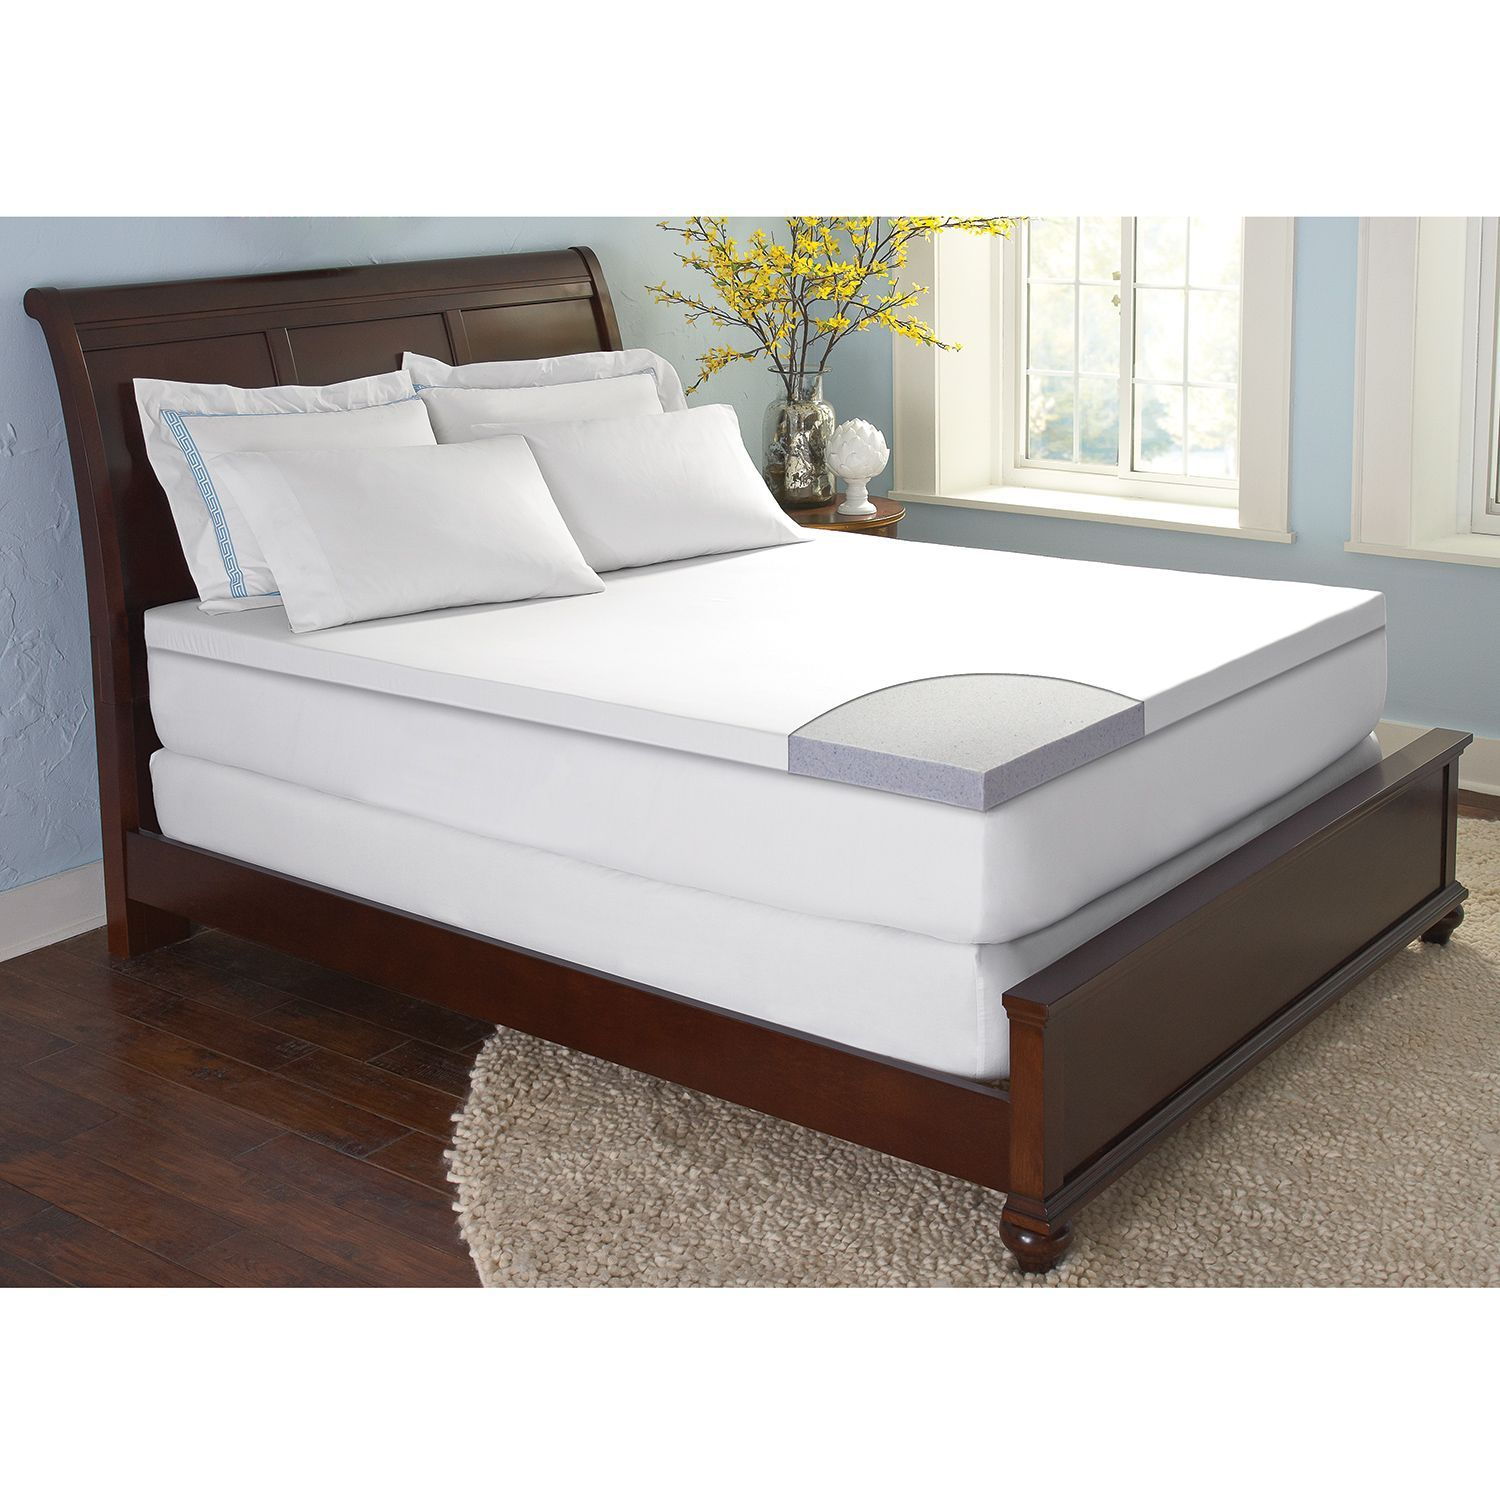 ideas home non toppers percent queen on also size foam removable cotton toddler surprising cover slip sweet of b wonderful waterproof favorite tempurpedic comfort decorating milliard crib with revolution review topper ventilated memory amazon full ca bed sealy pleasant inch mattress